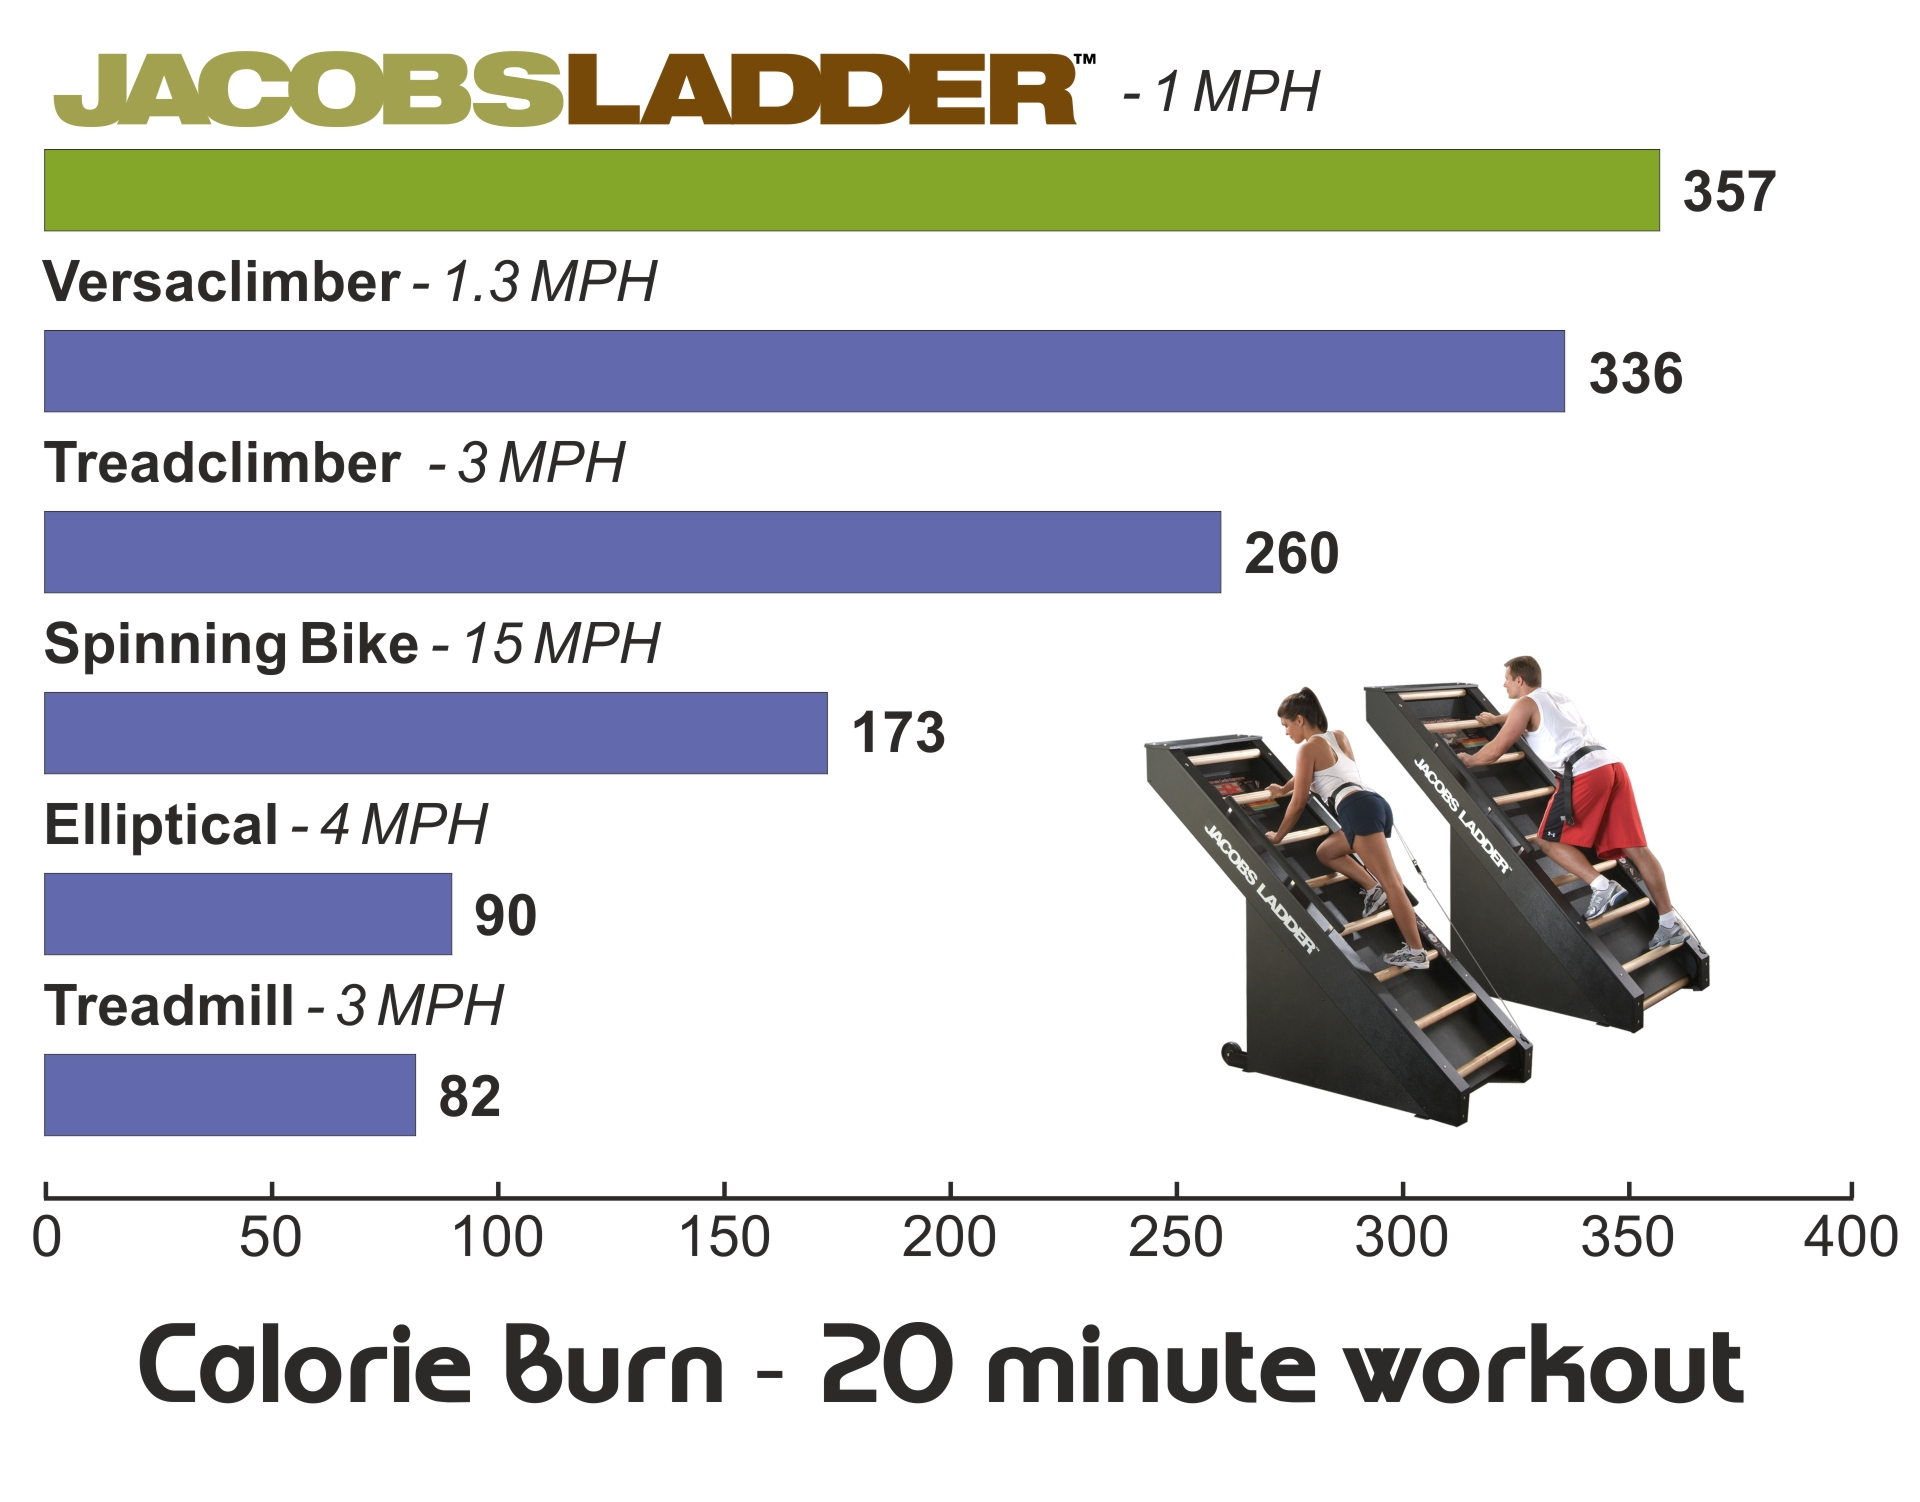 Jacobs Ladder Calorie Burn Table